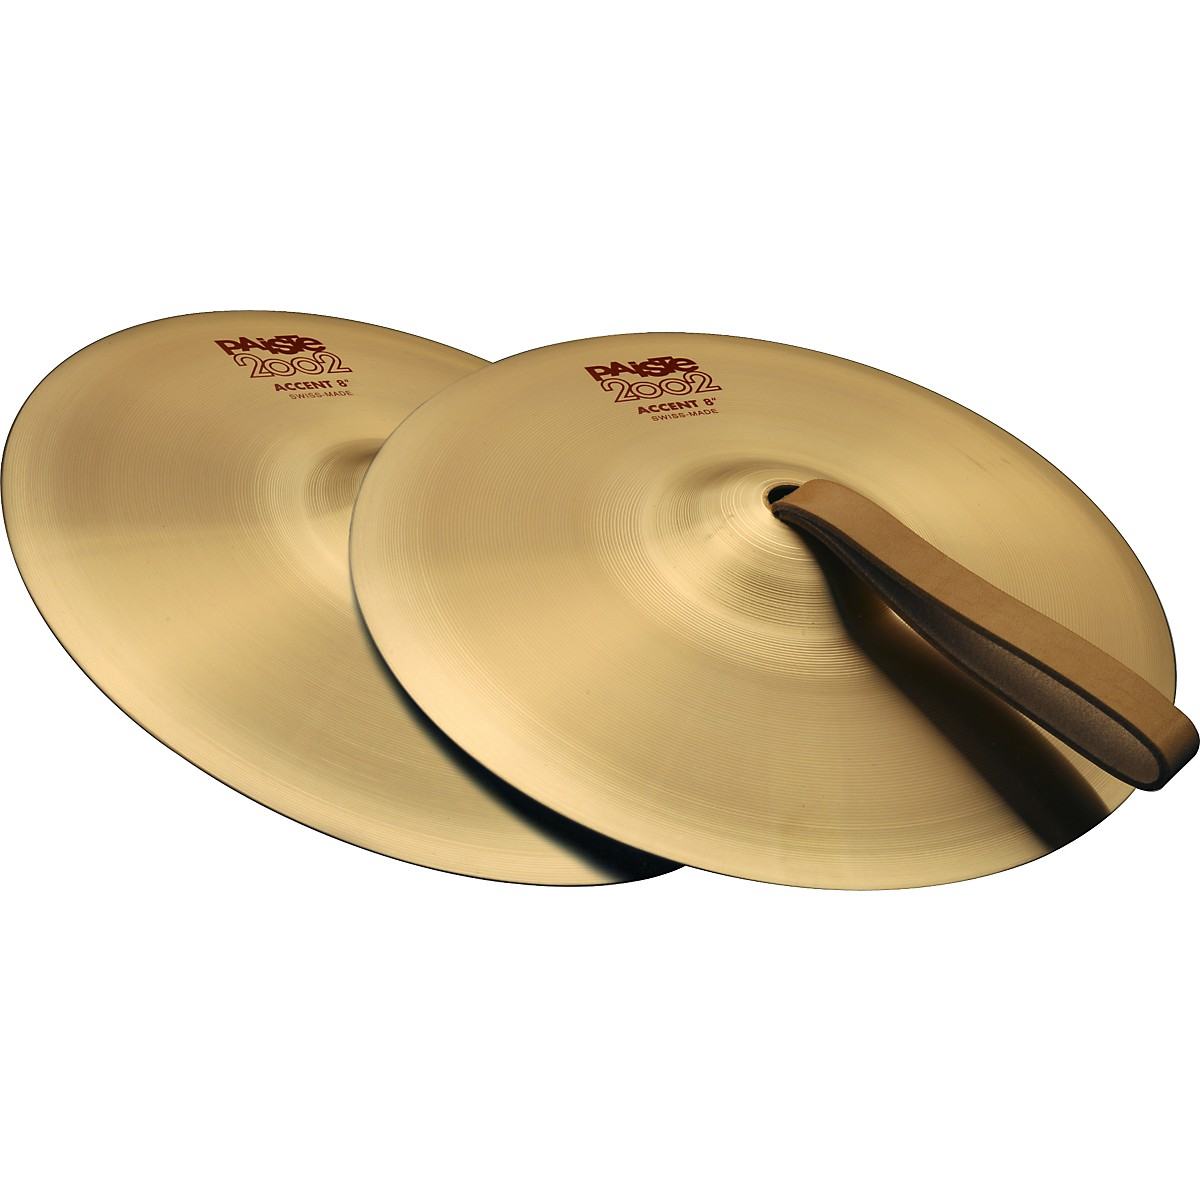 Paiste 2002 Accent Cymbal Pair